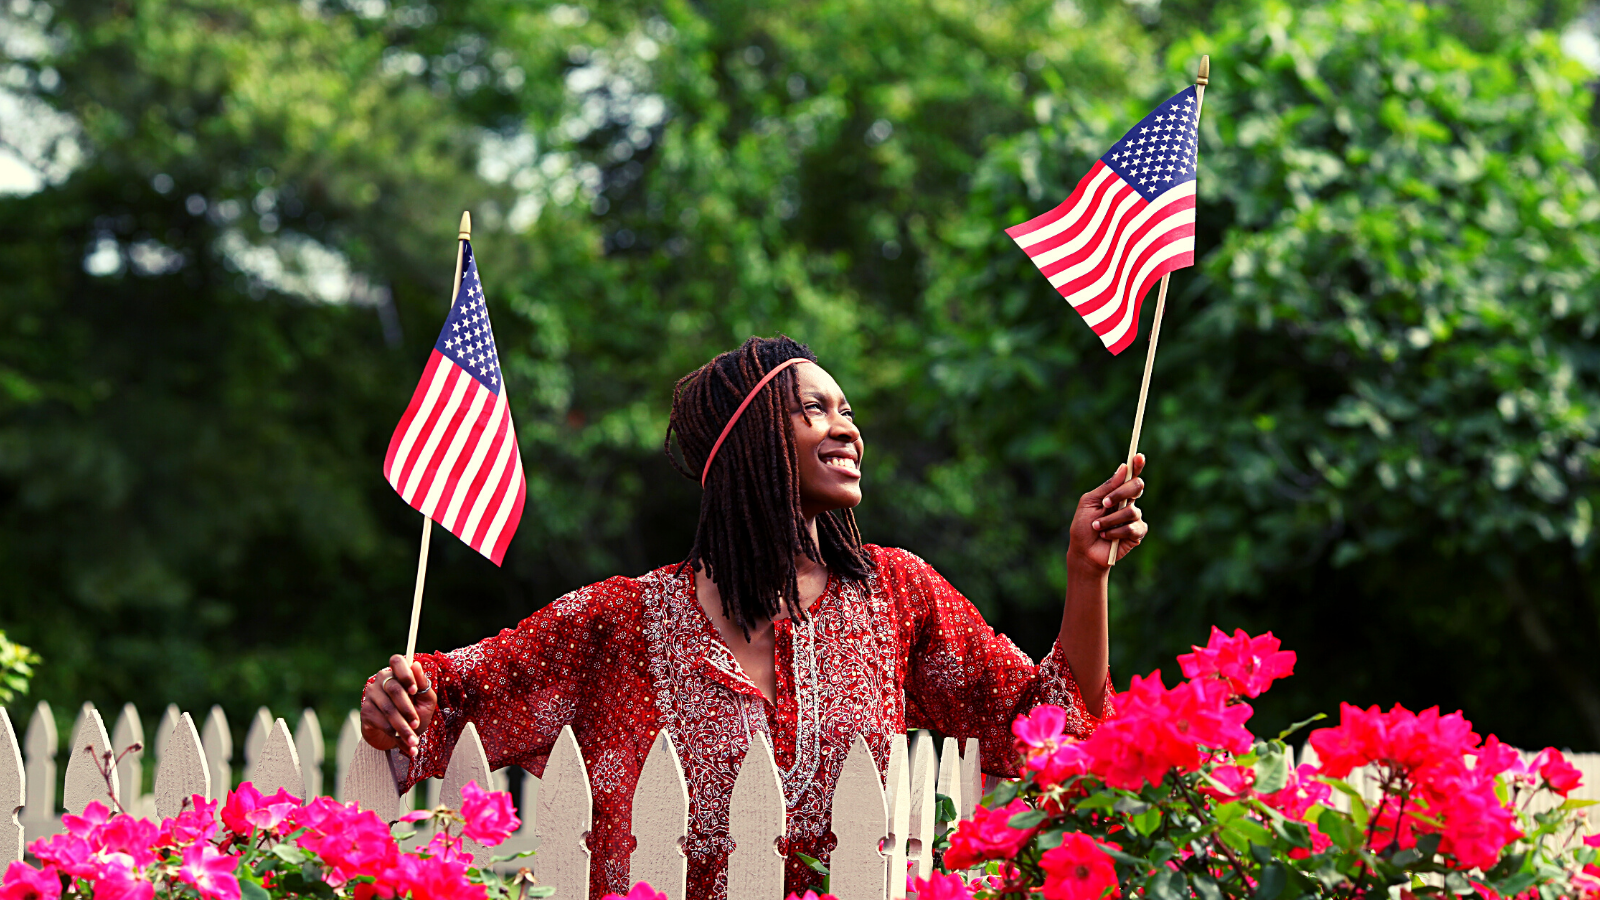 Woman-holding-usa-flags-flowers